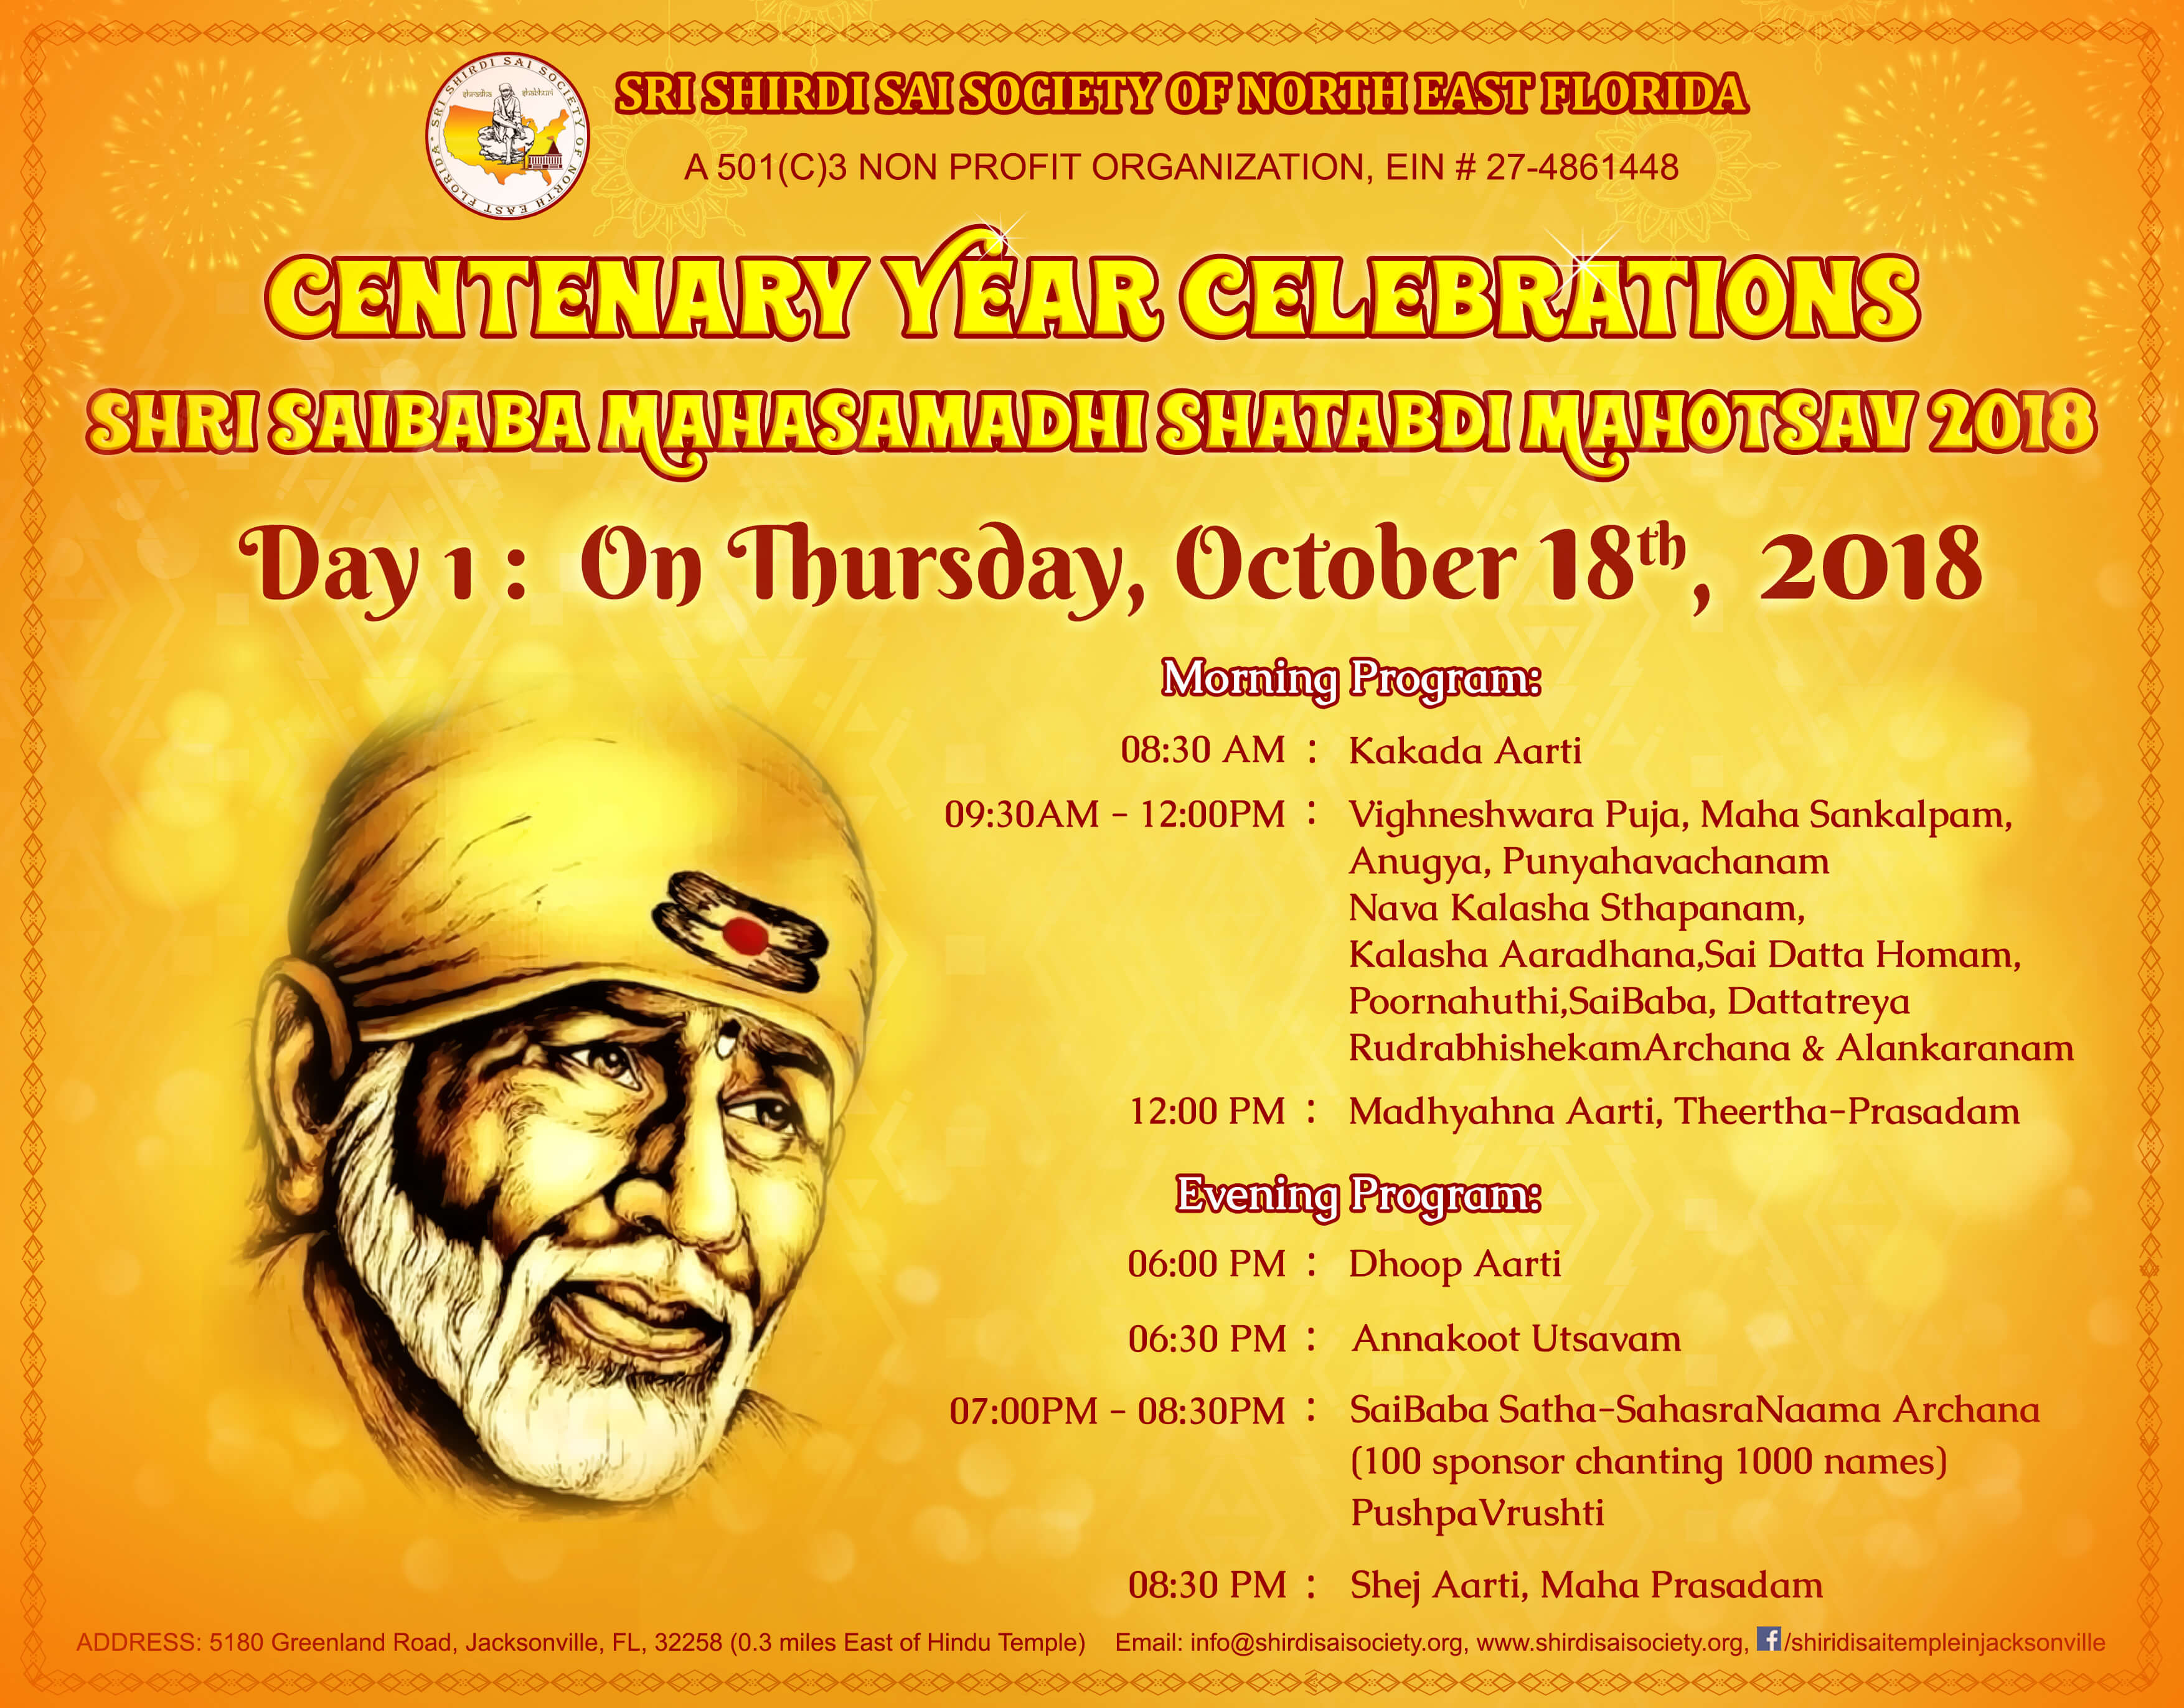 Sri Shirdi Sai Society of North East Florida : Old Events